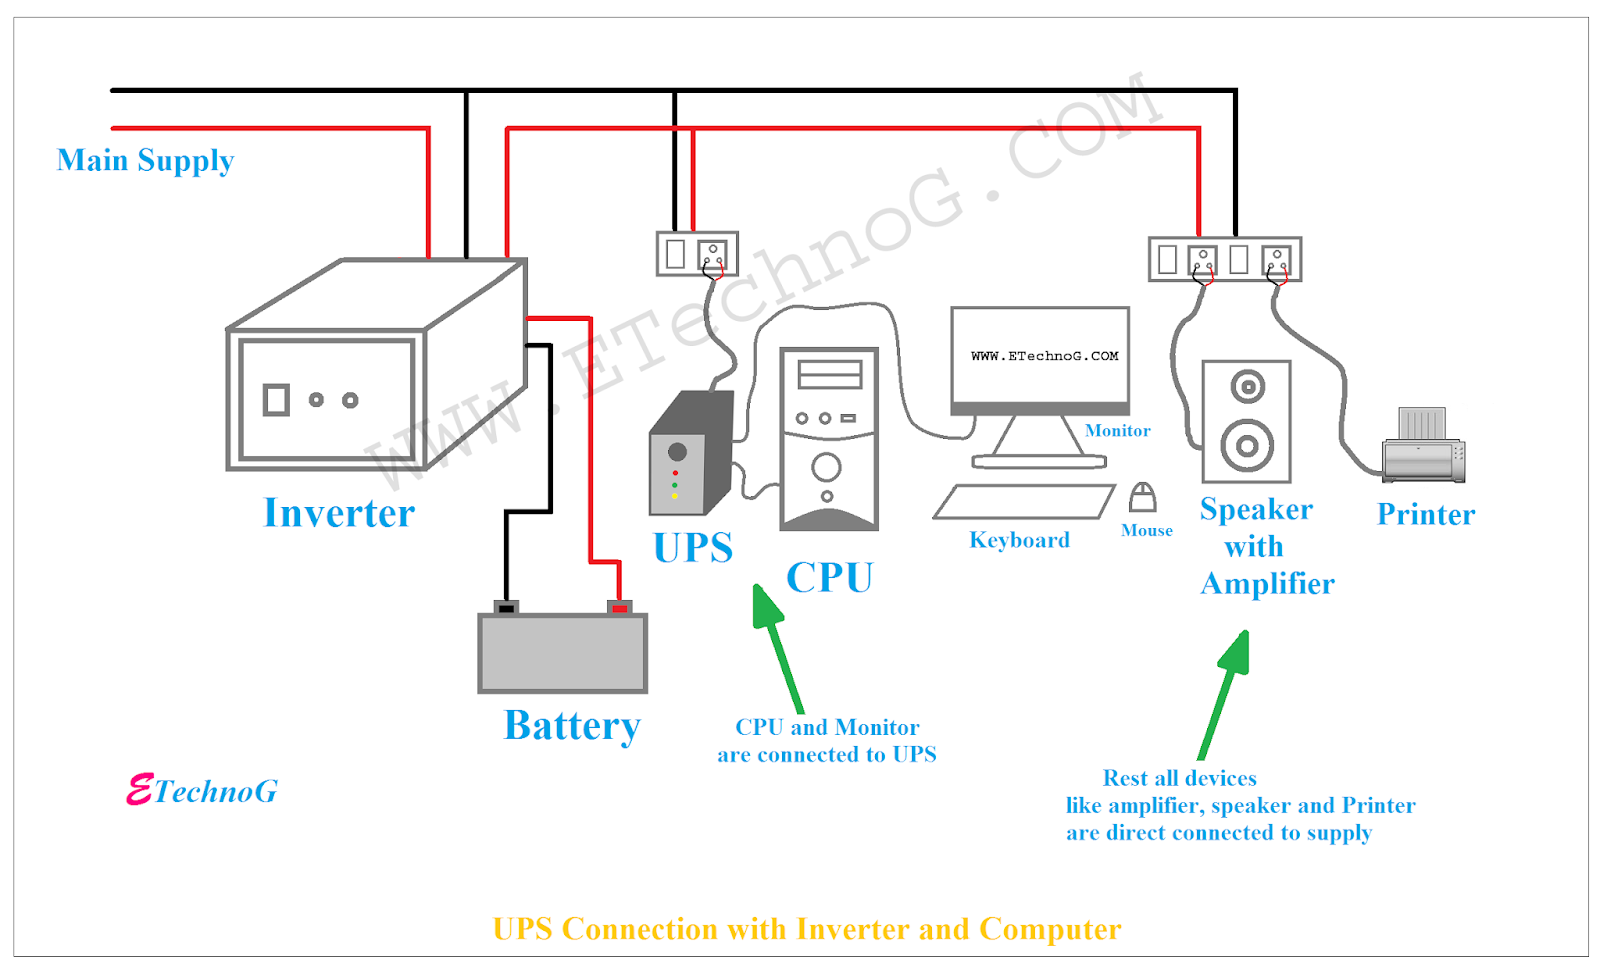 hight resolution of proper ups connection with loads inverter computer at home etechnogups connection ups connection diagram